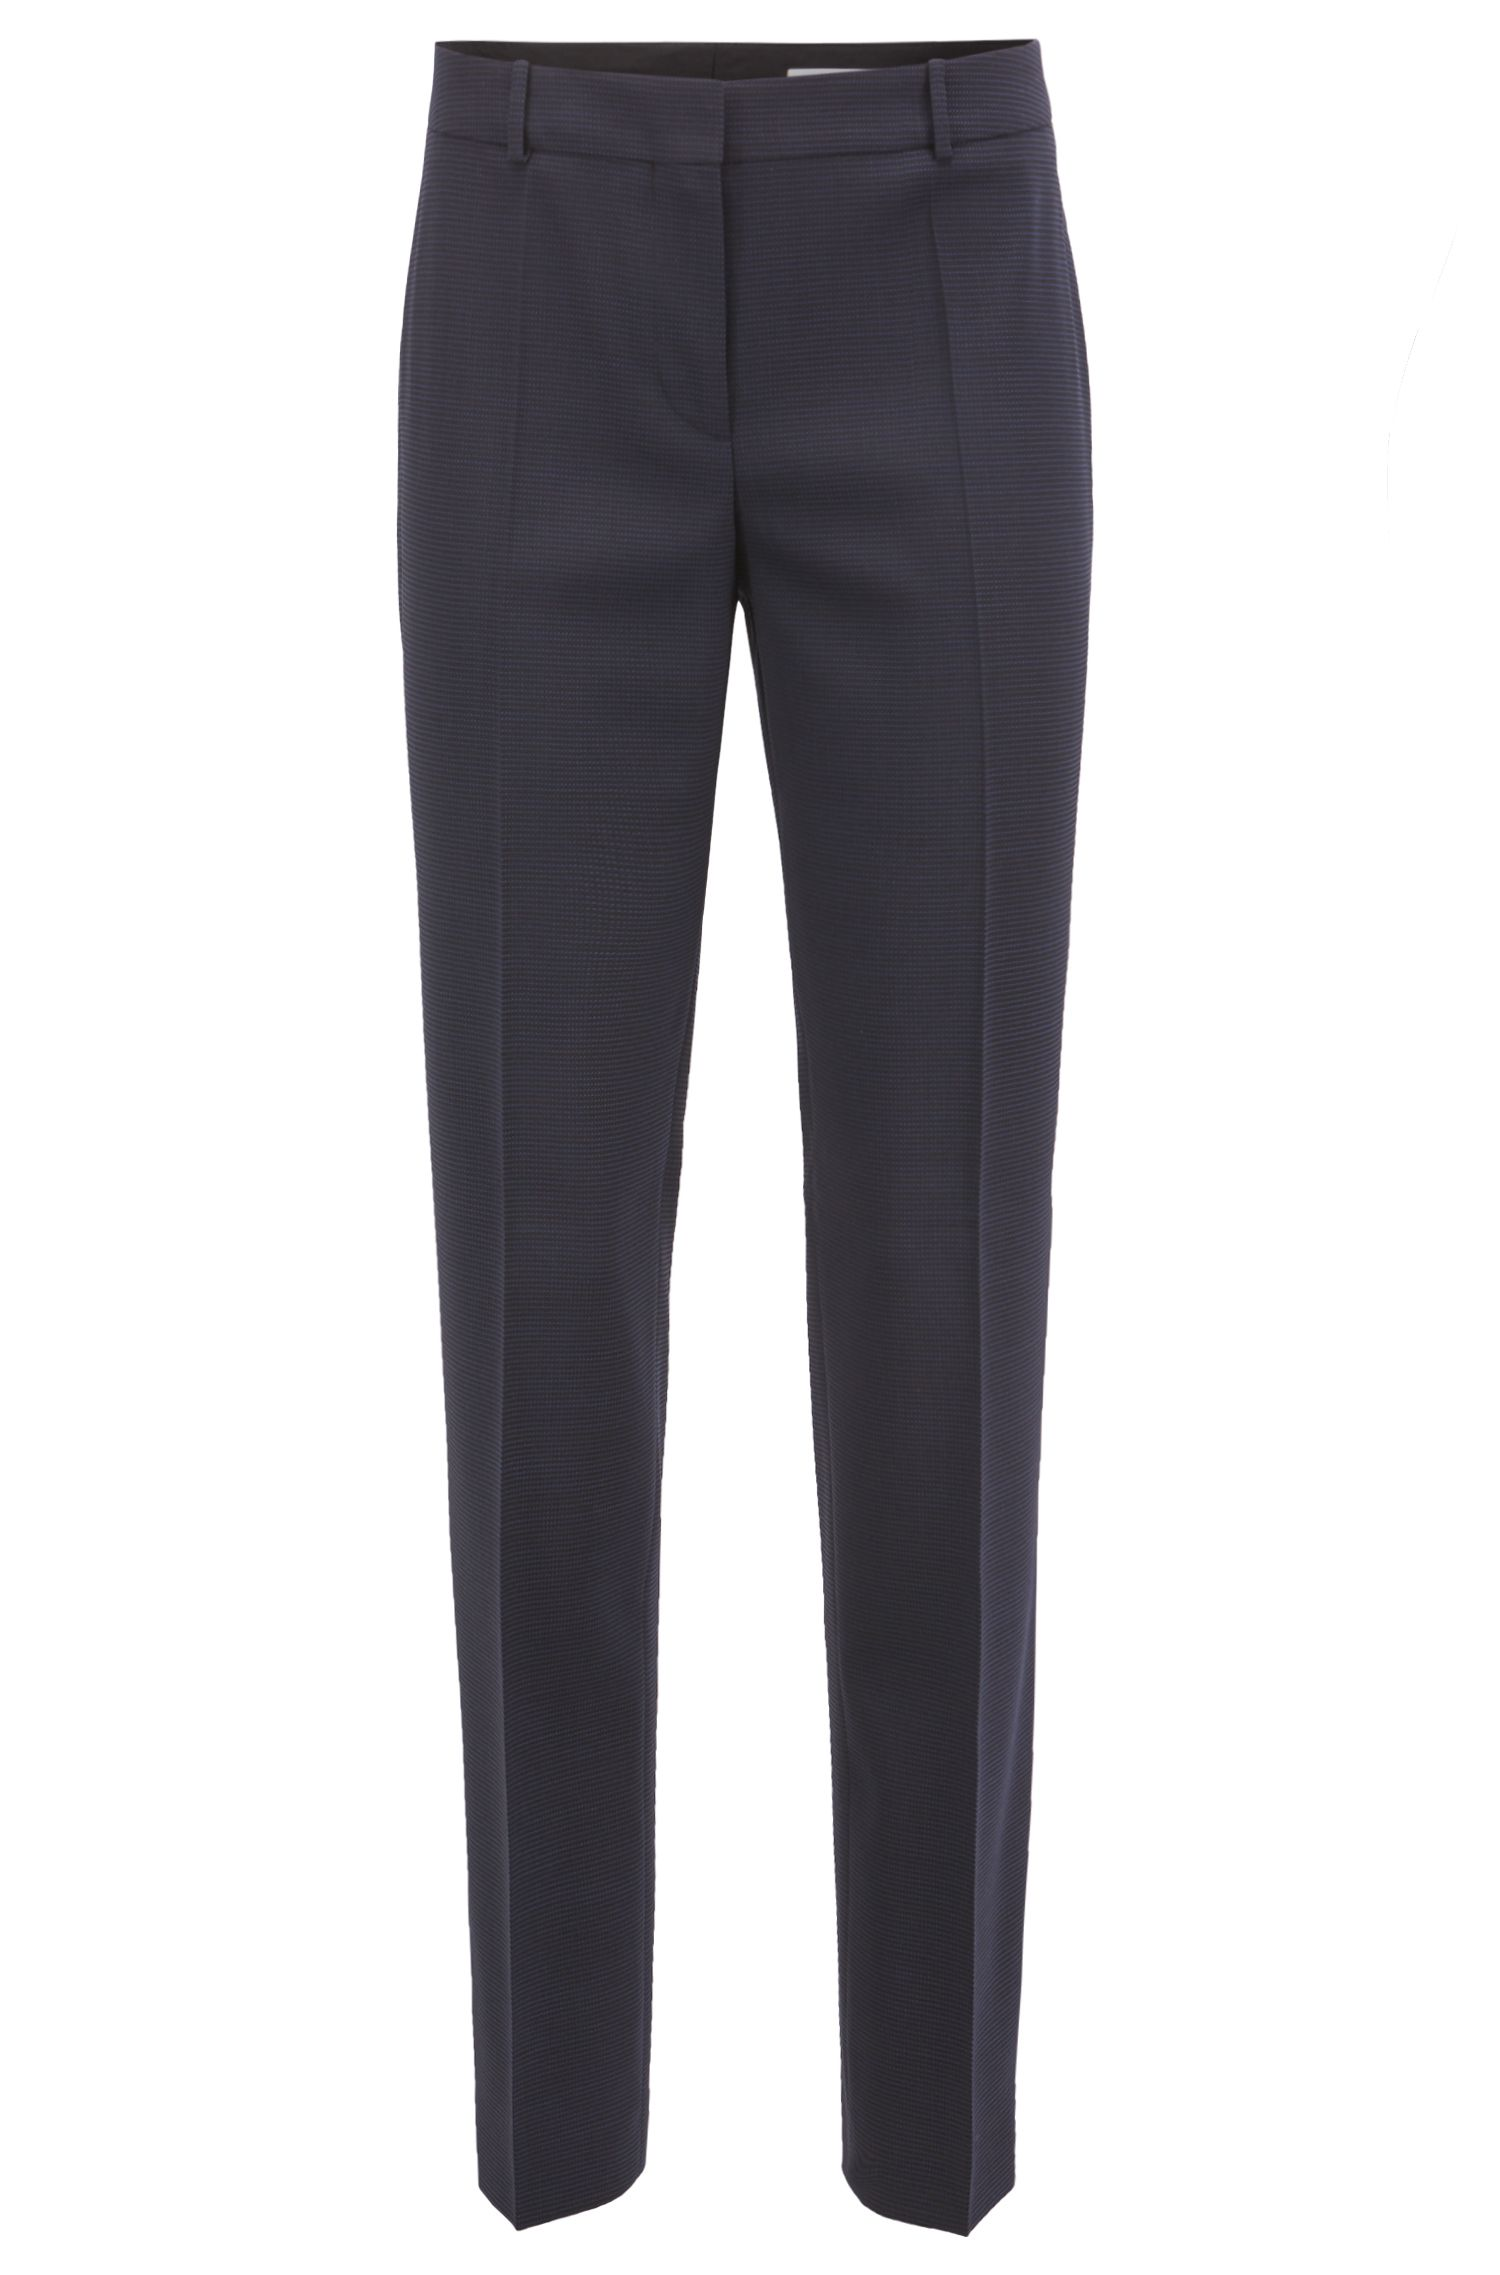 Slim-fit trousers in Italian stretch virgin wool, Patterned